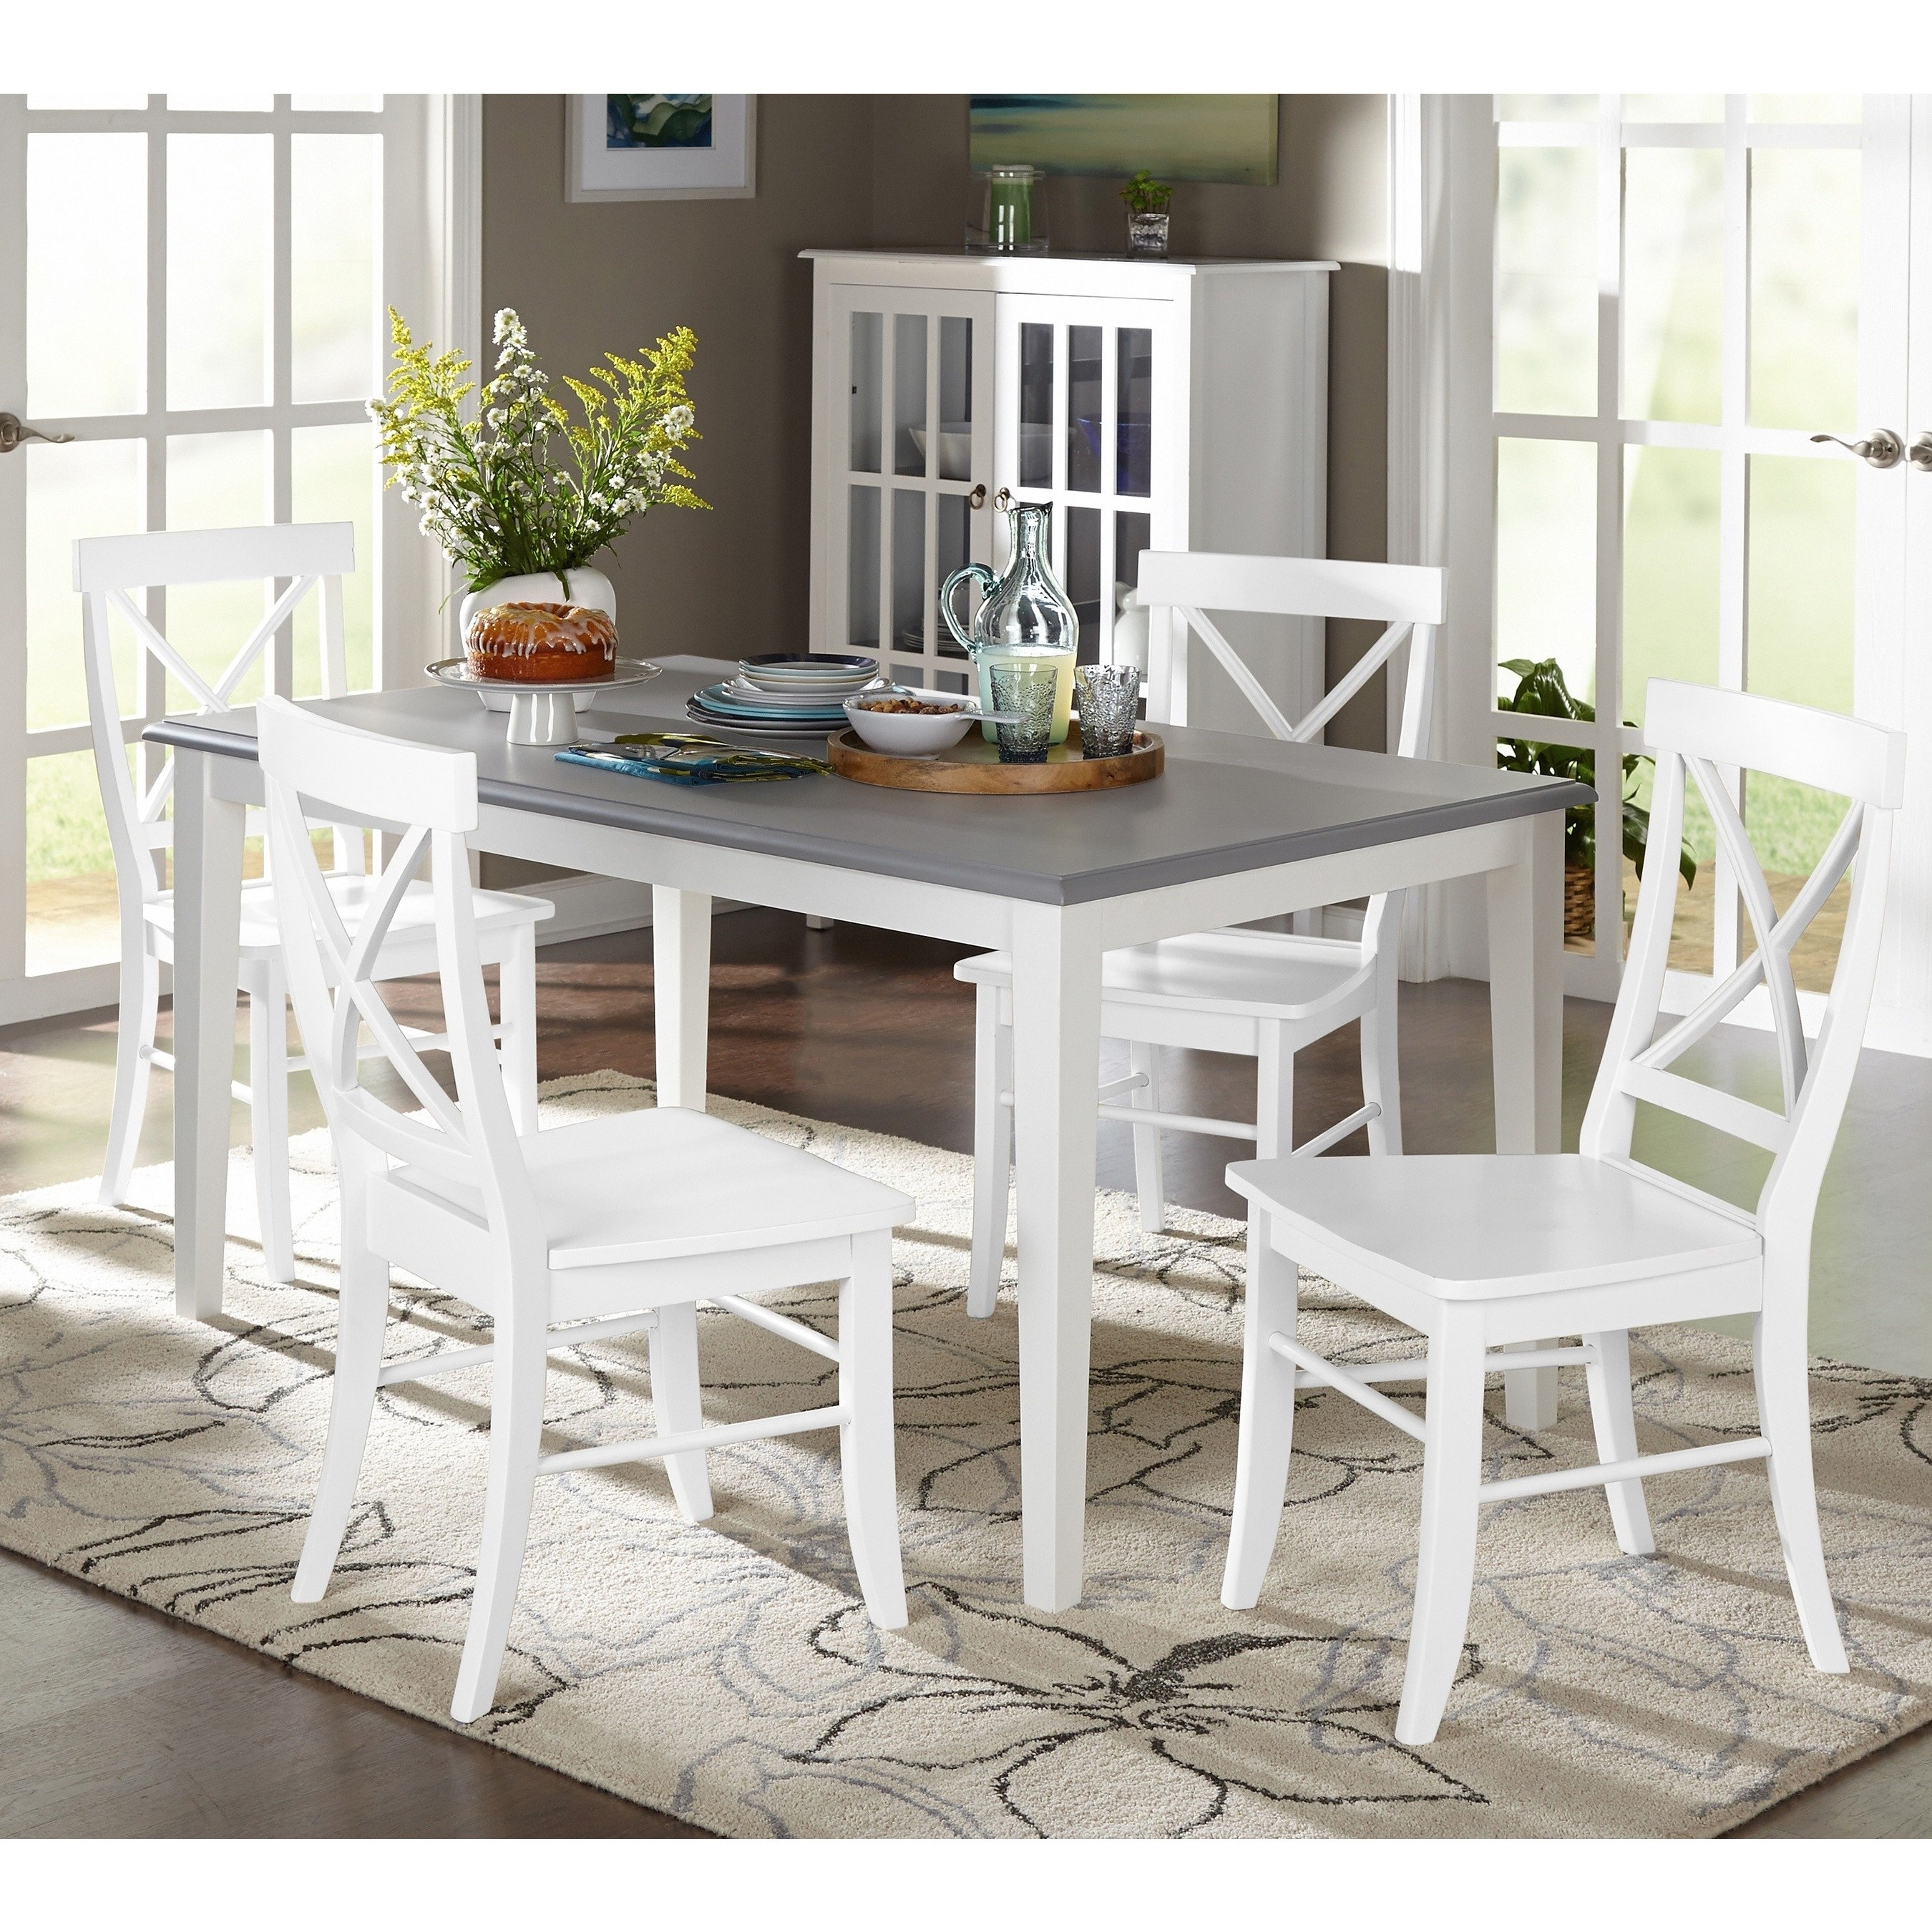 Shop Simple Living 5 Piece Helena Dining Set – Free Shipping Today Intended For Most Up To Date Laurent 5 Piece Round Dining Sets With Wood Chairs (View 8 of 20)